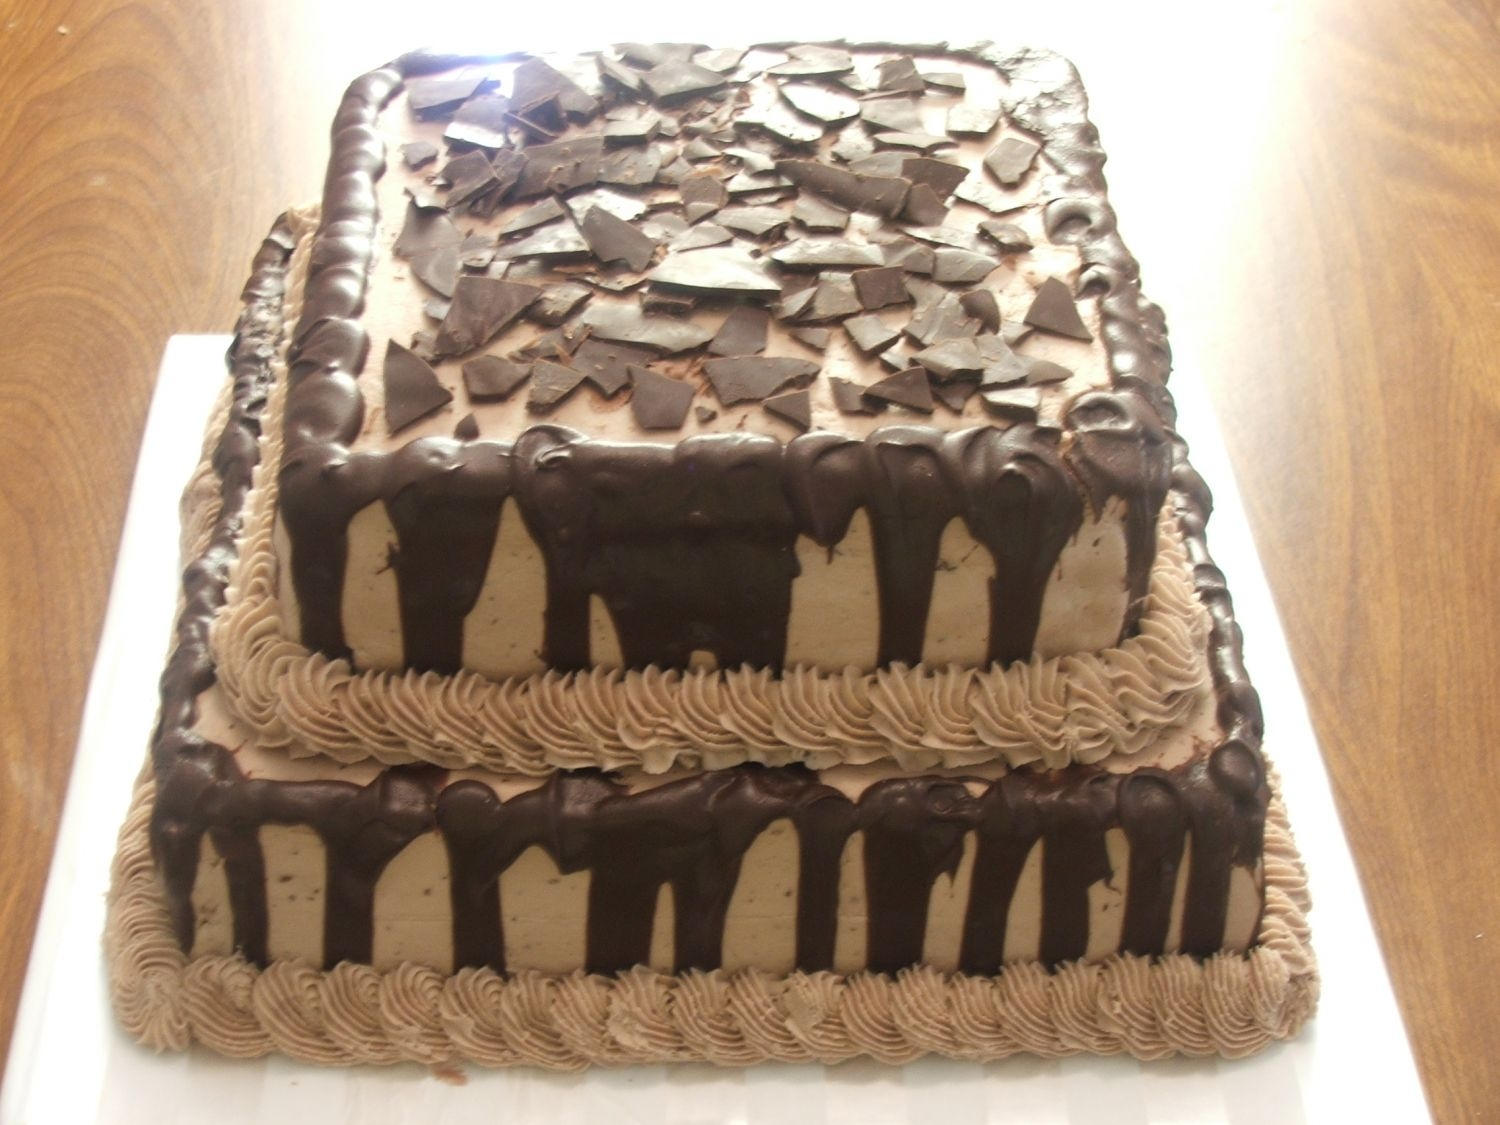 Choc. Grooms Cake This is a choc. choc. chip grooms cake with carmel filling and choc. buttercream